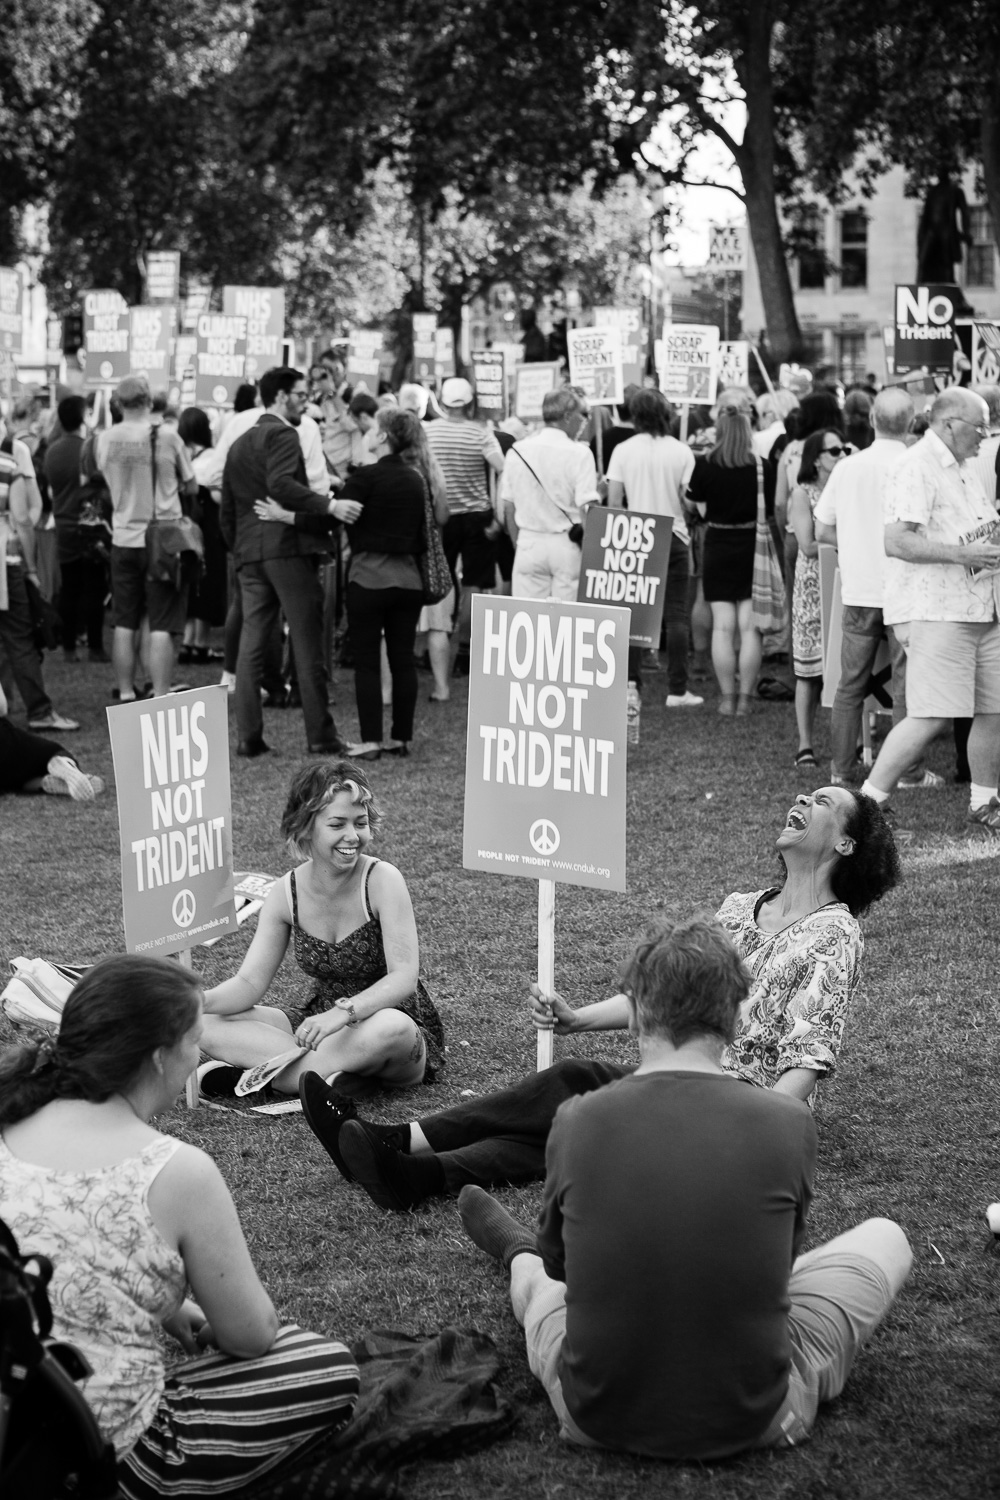 protestors in the park - Documentary Photos